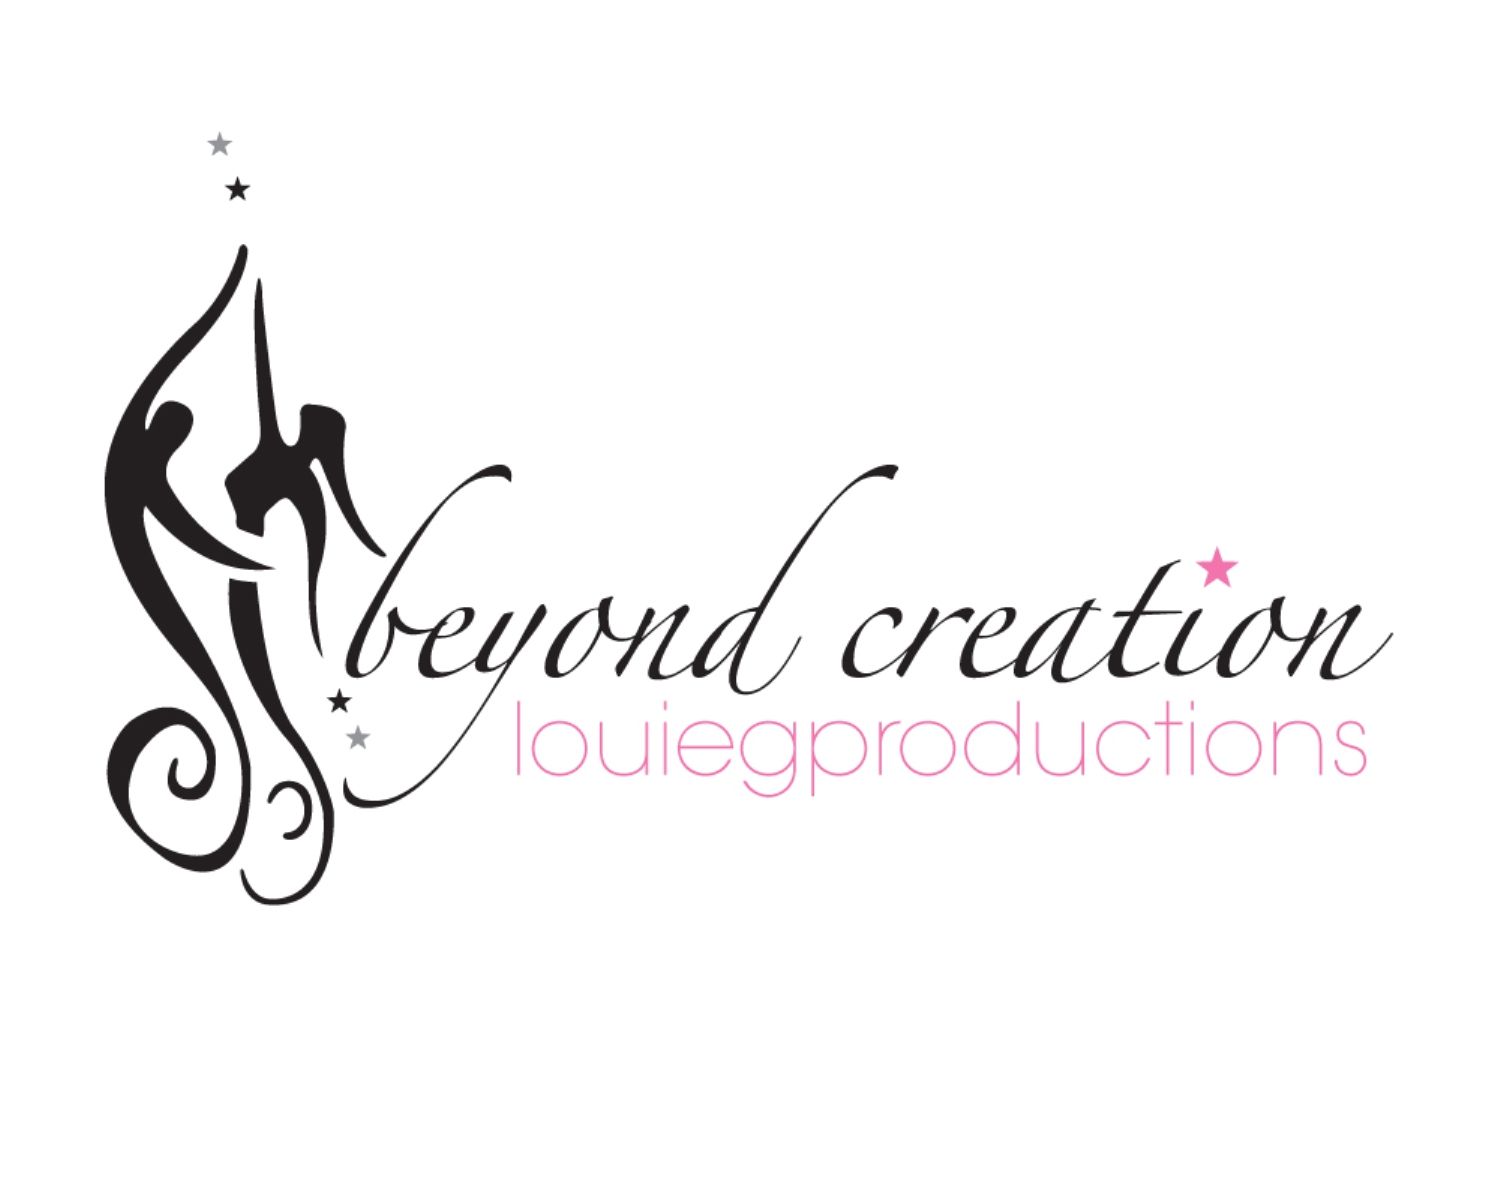 16.08.11_Louiegproductions_logo_WEBSITE